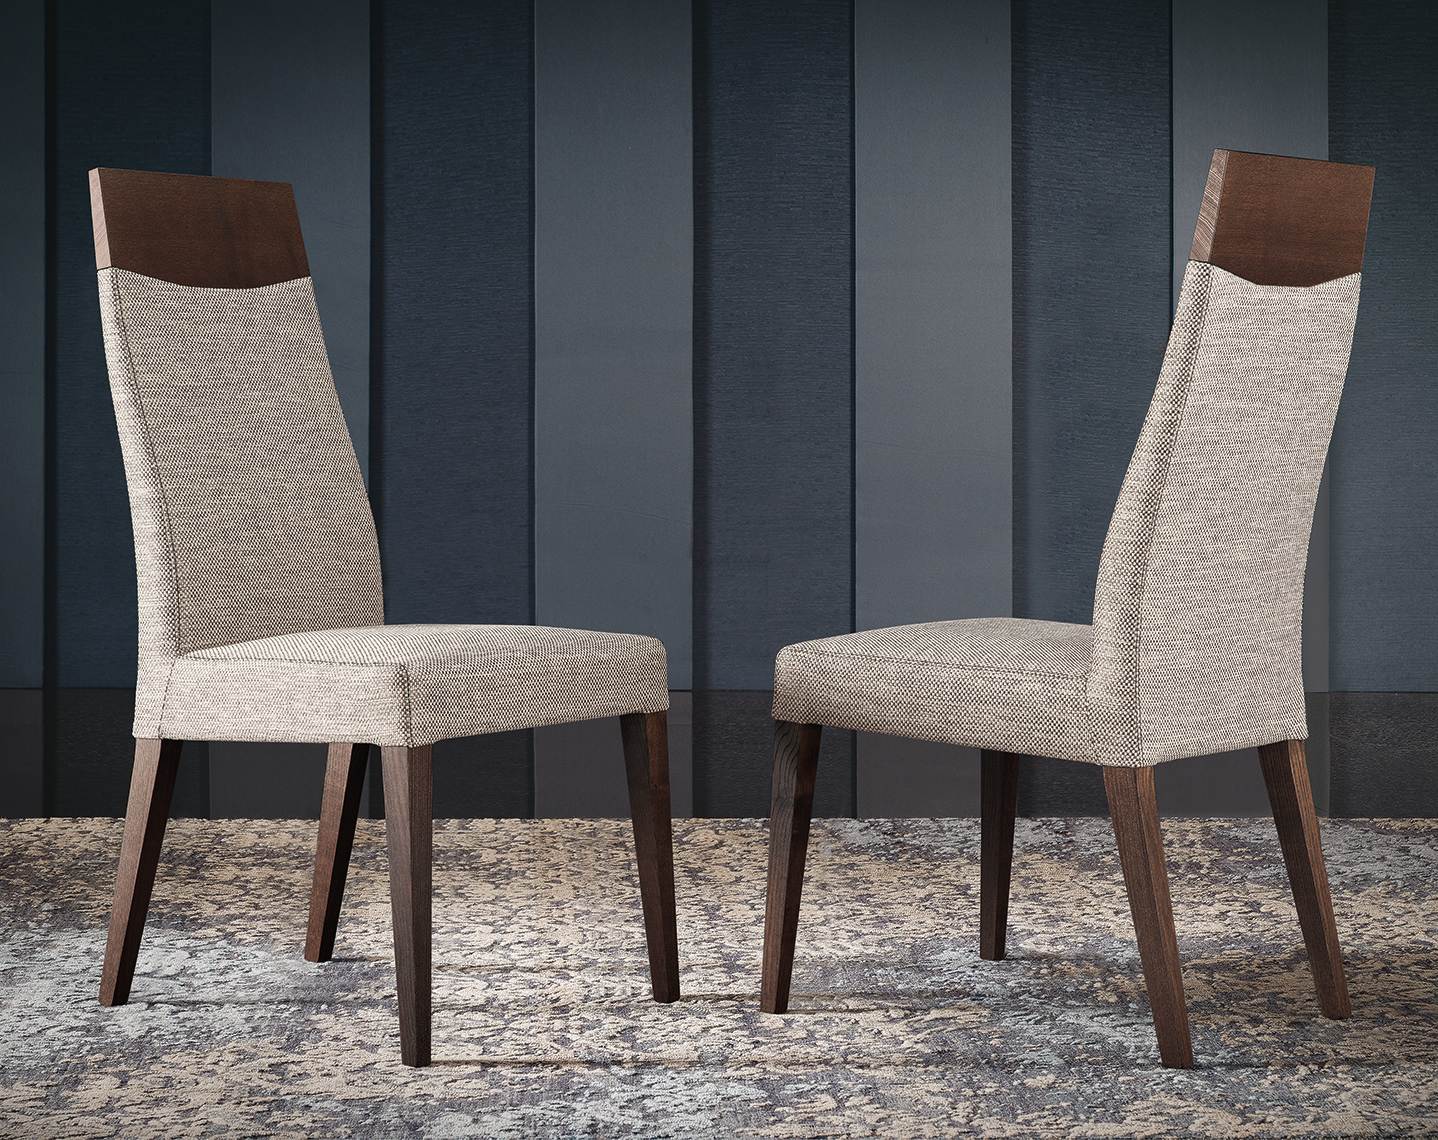 Accademia Dining Room Regale Chairs